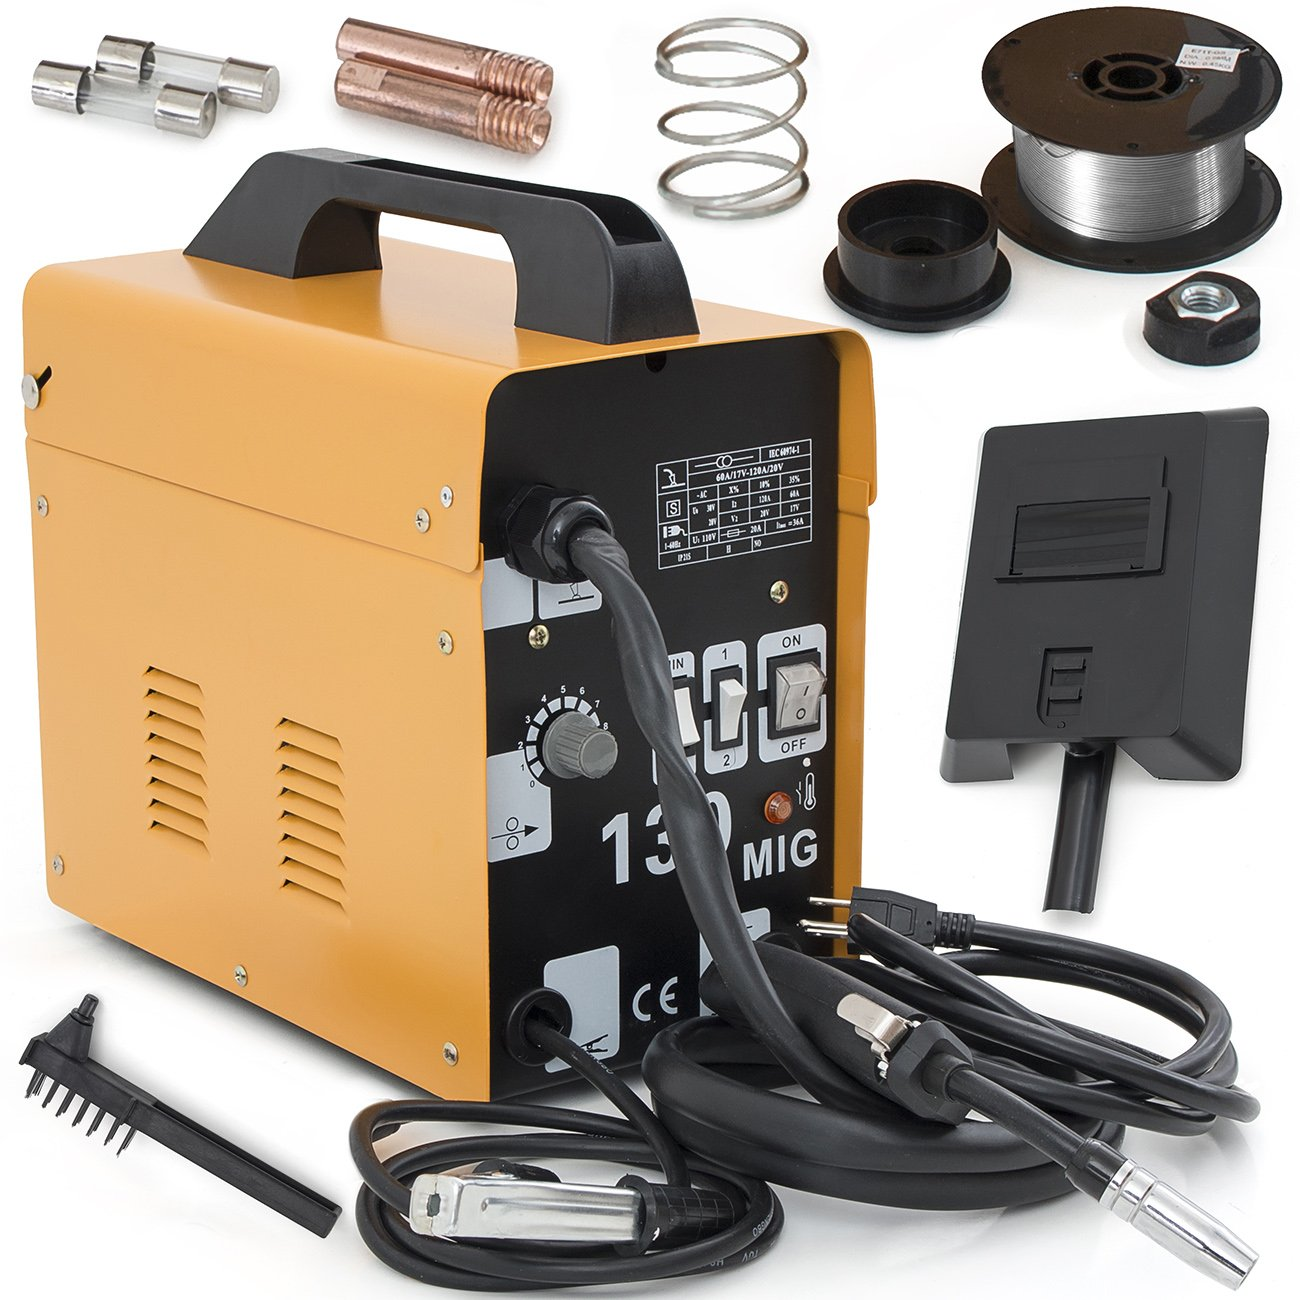 ARKSEN MIG-130 Welding Machine Gas Less Flux Core Wire DIY Home ...